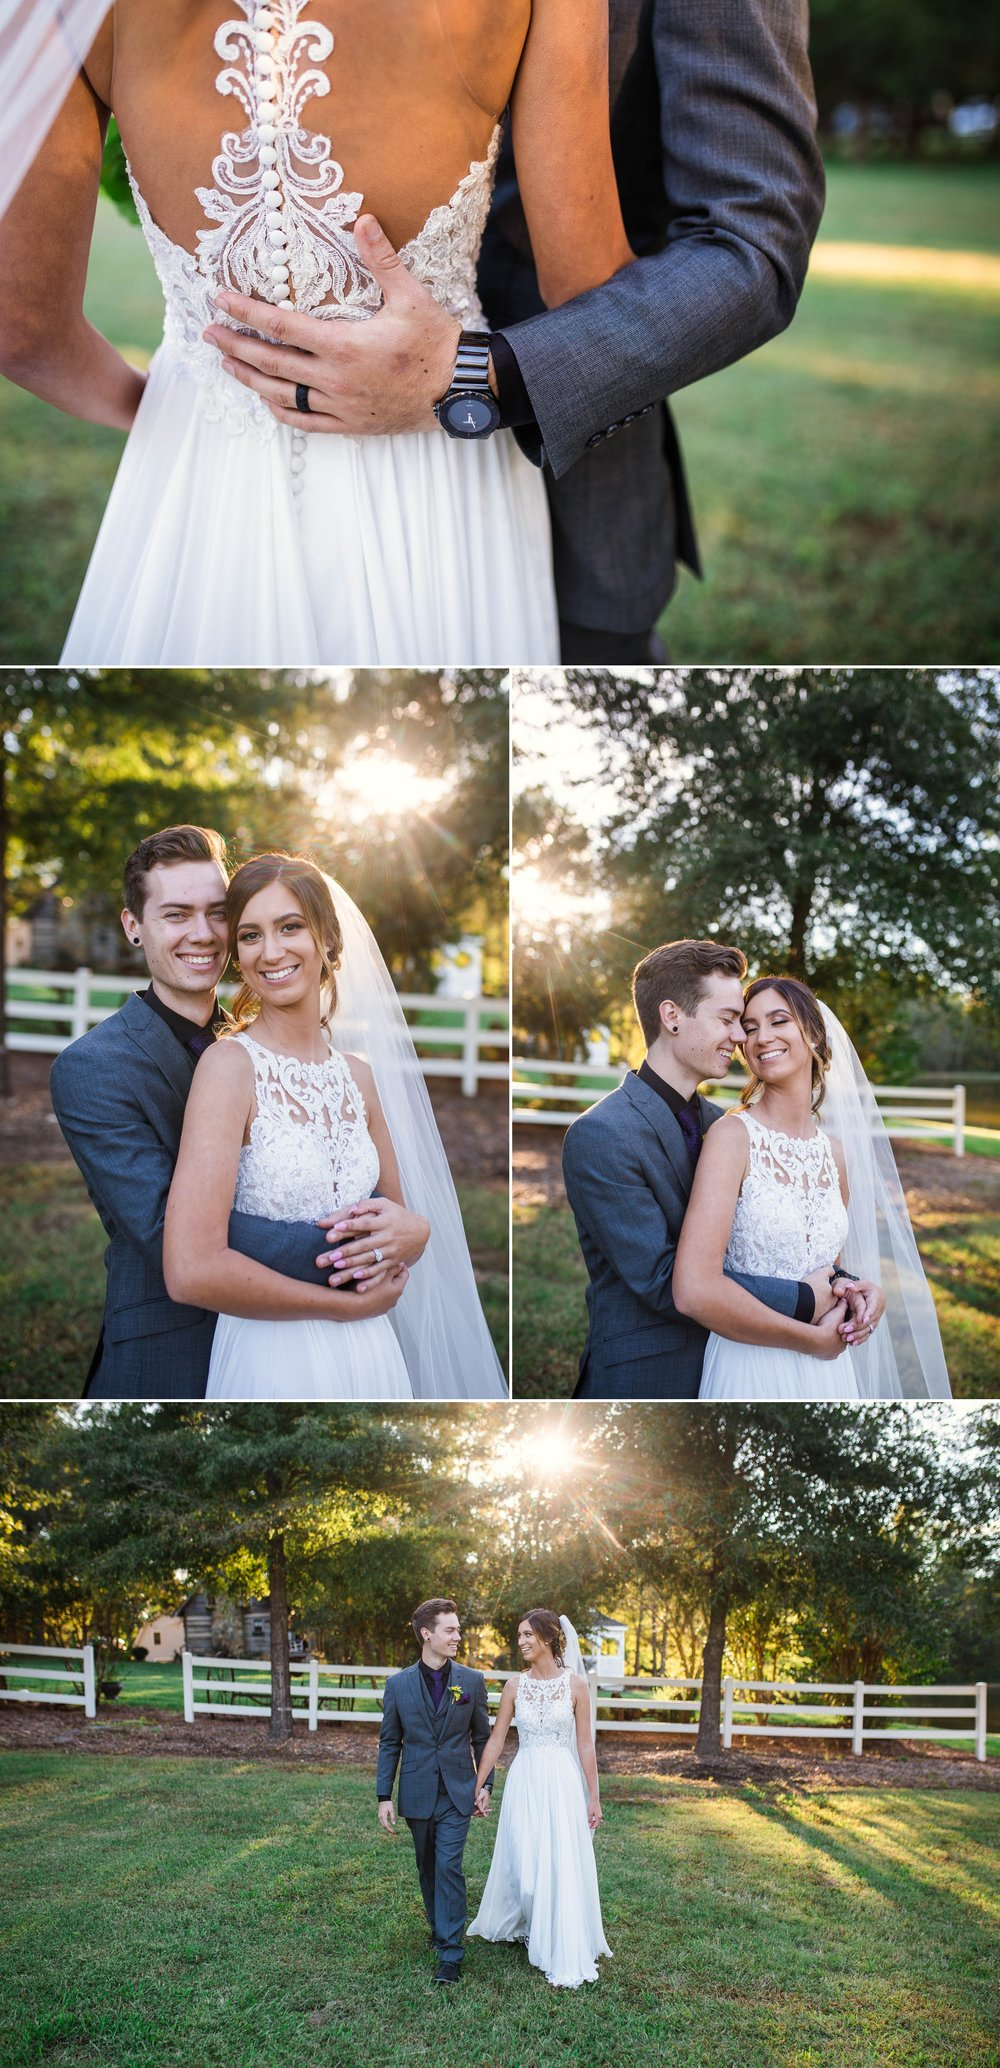 Portraits of Bride and Groom - Brittany + Greg - The Groomes Place - Charlotte, NC Wedding Photographer